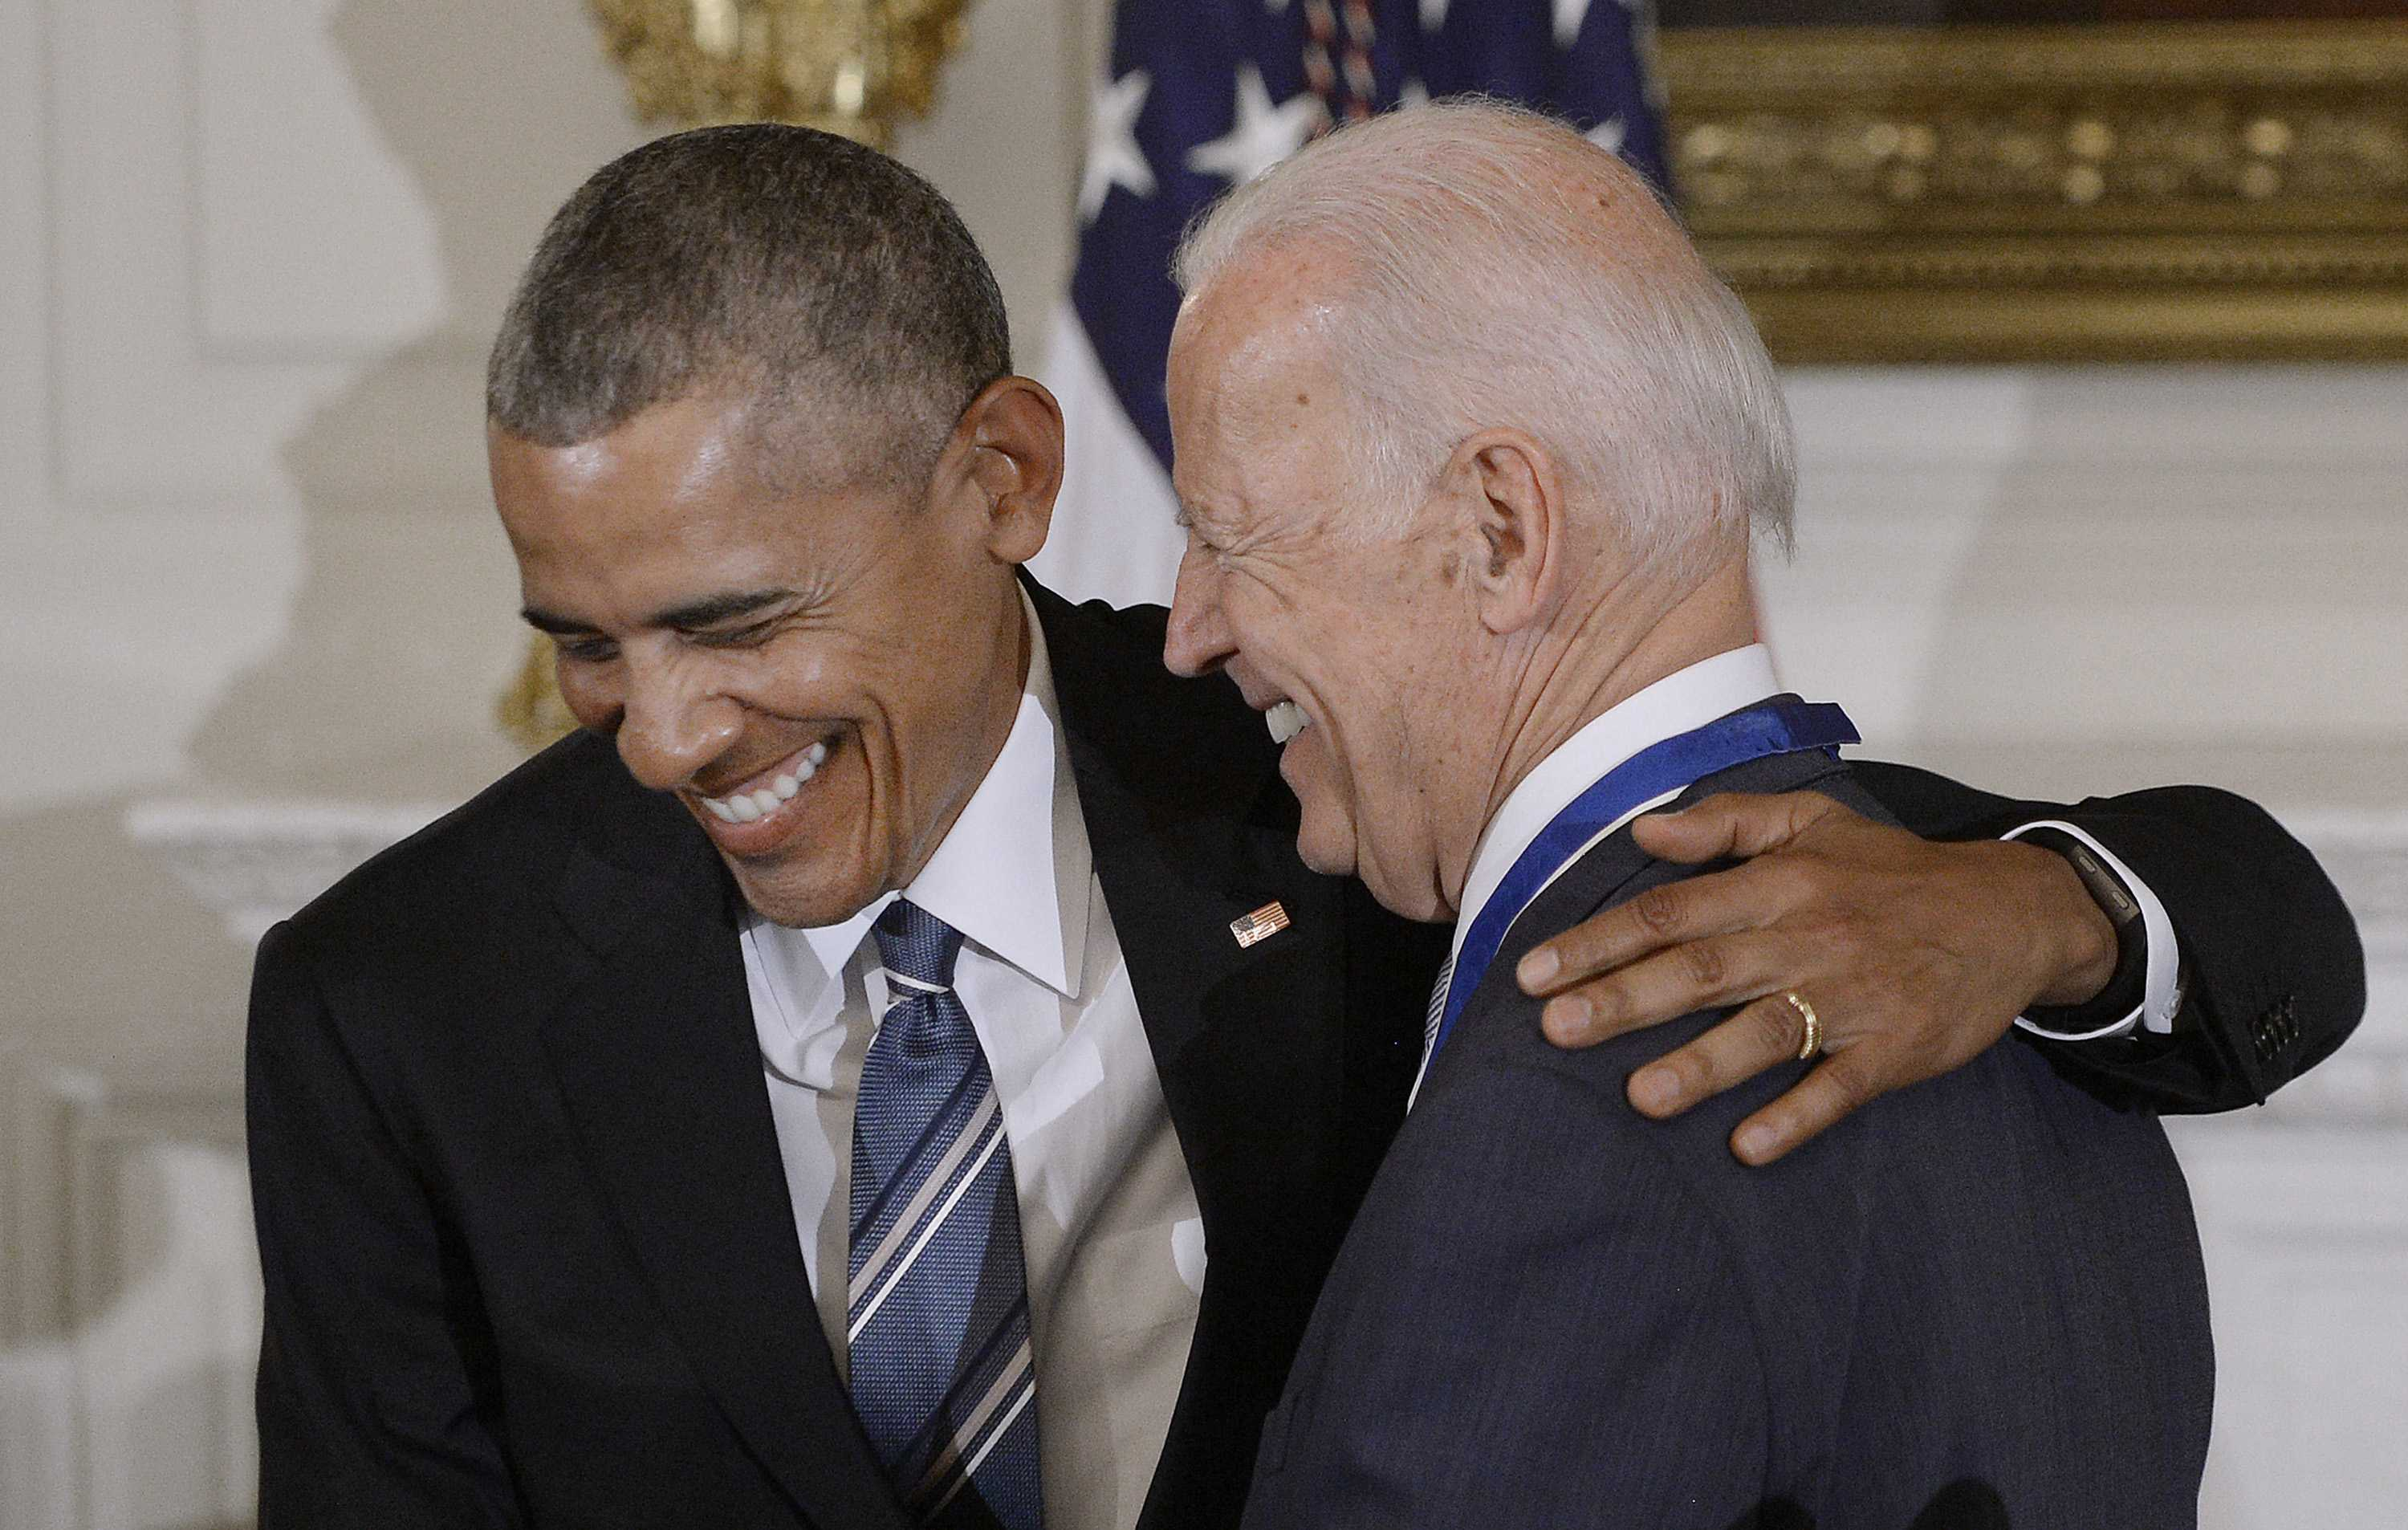 U.S. President Barack Obama jokes with Vice-President joe Biden after he presented him the Medal of Freedom during an event in the State Dining room of the White House, Jan. 12, 2017 in Washington, D.C. (Olivier Douliery/Abaca Press/TNS)